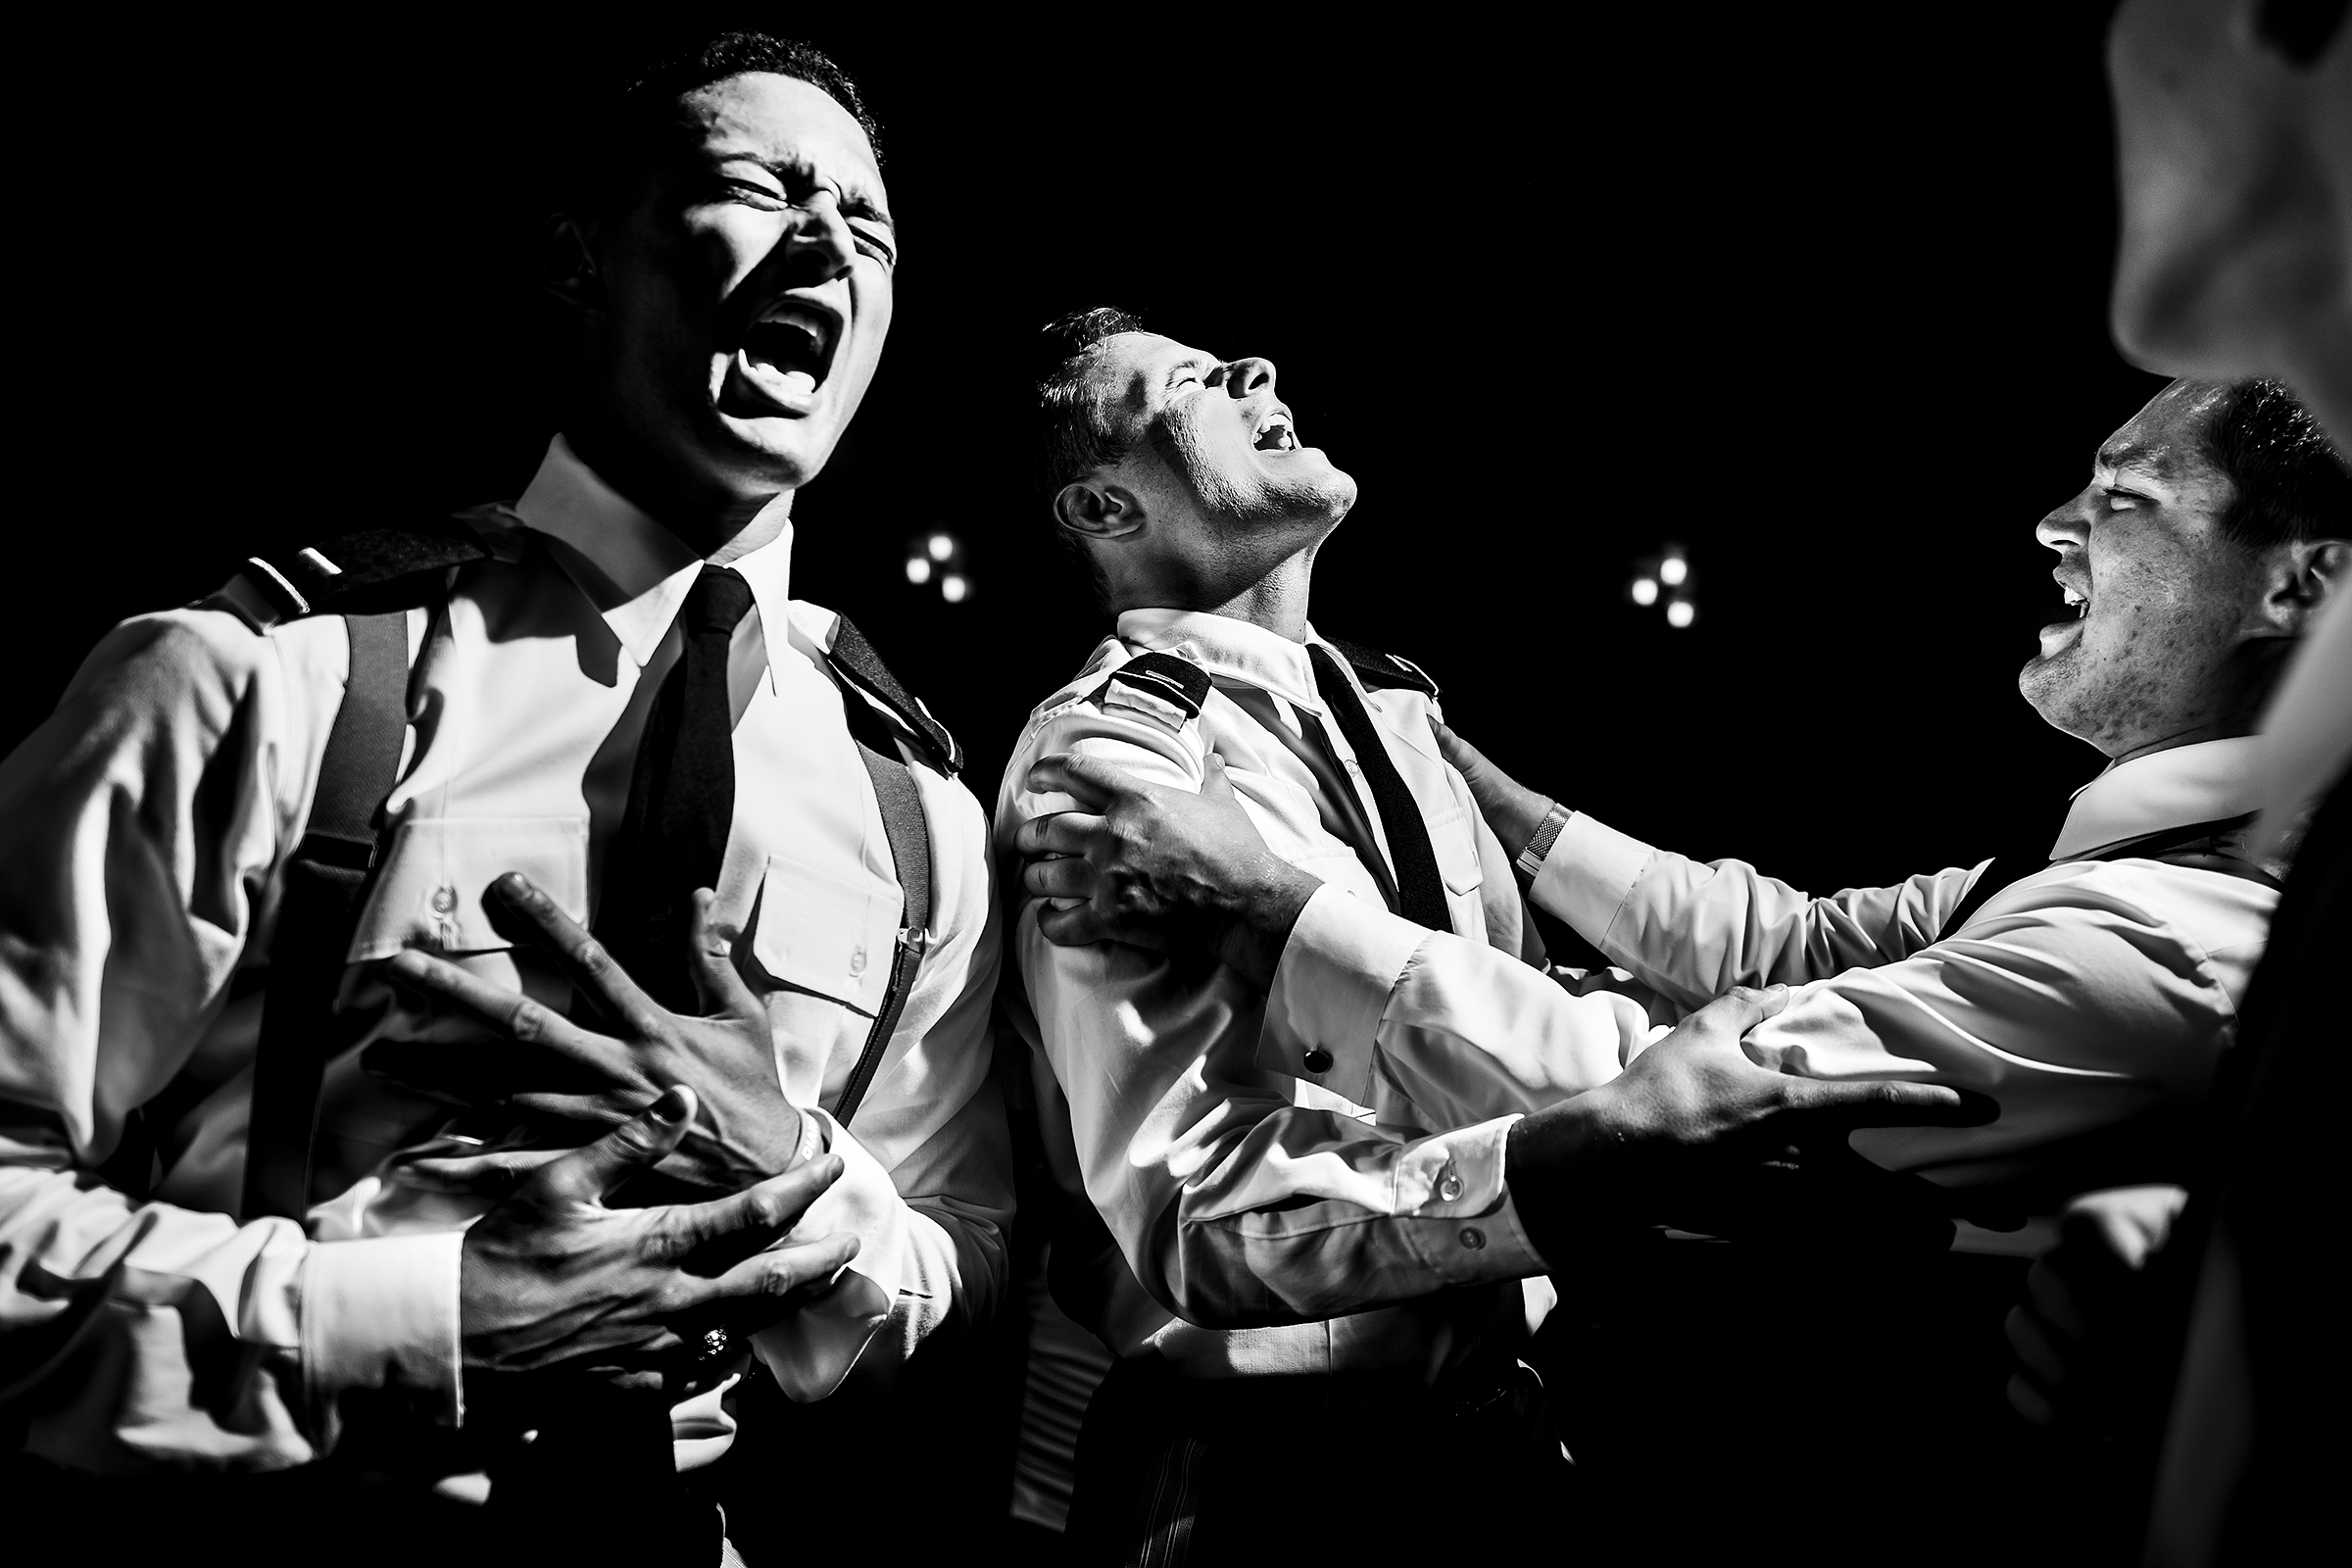 Grooms singing and partying - photo by J. La Plante Photo